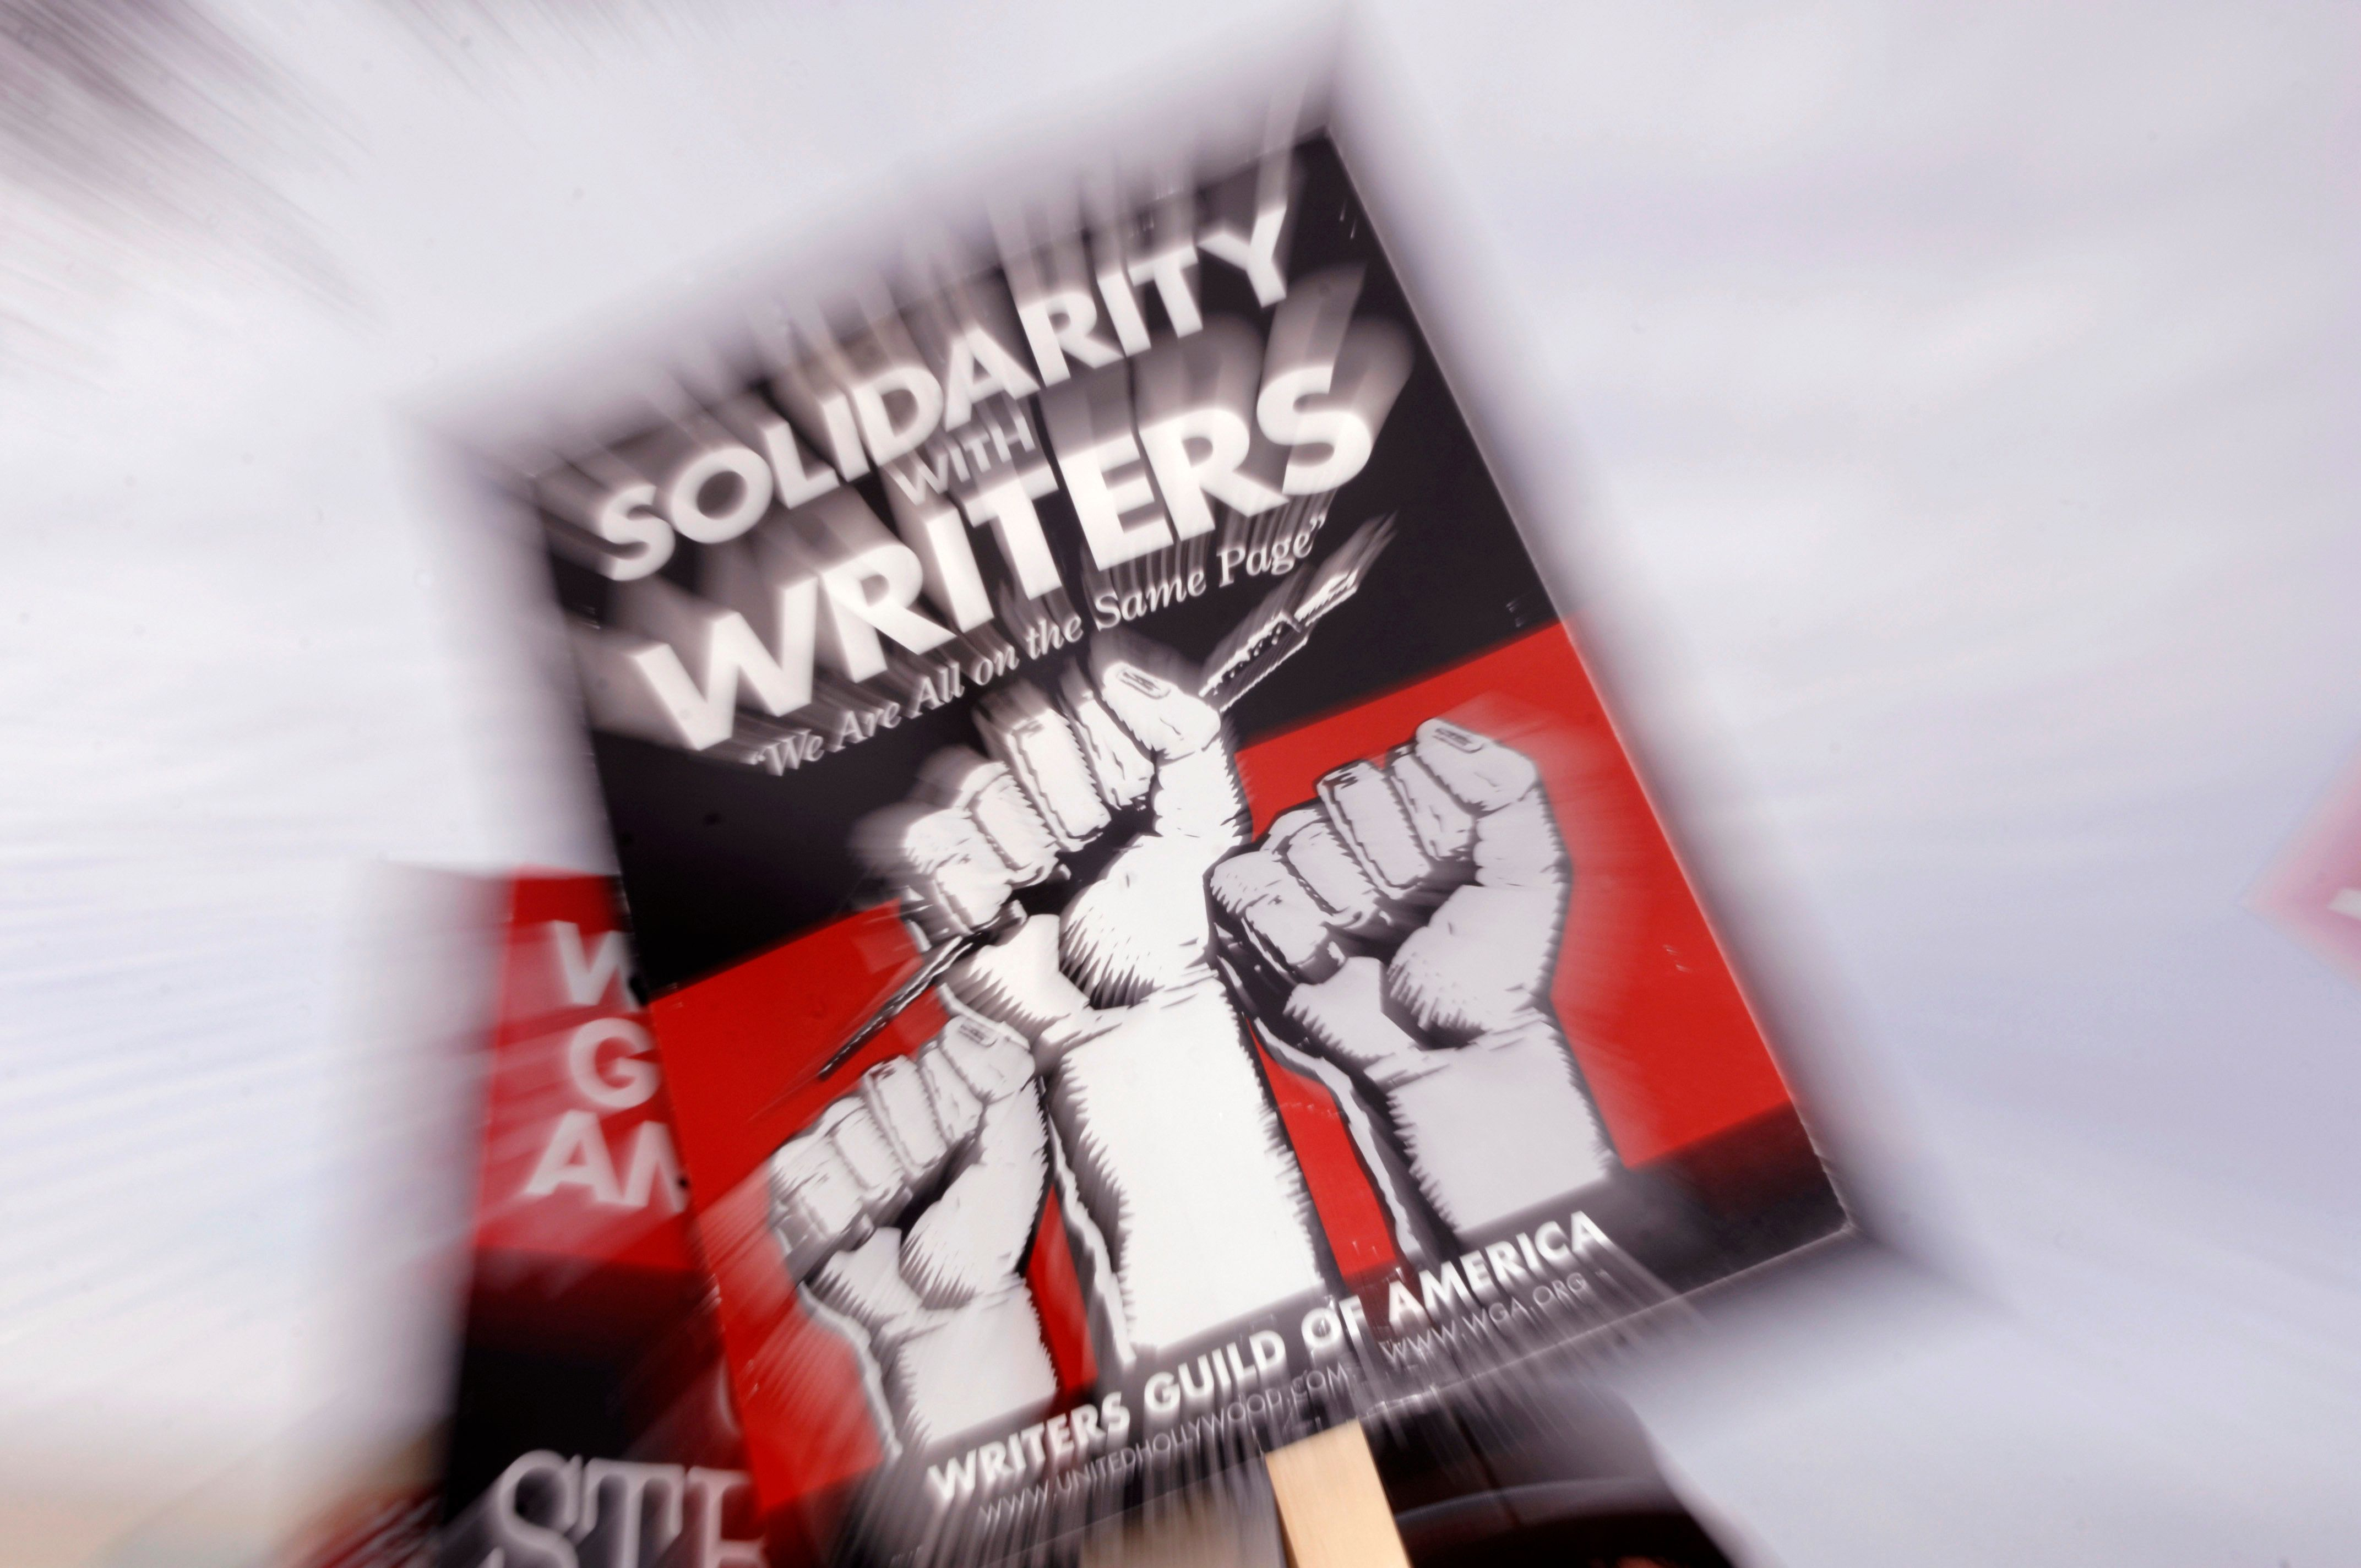 A picket sign from the Writers Guild of America is seen as members protest in front of NBC studios in Burbank, California January 2, 2008. REUTERS/Phil McCarten (UNITED STATES)